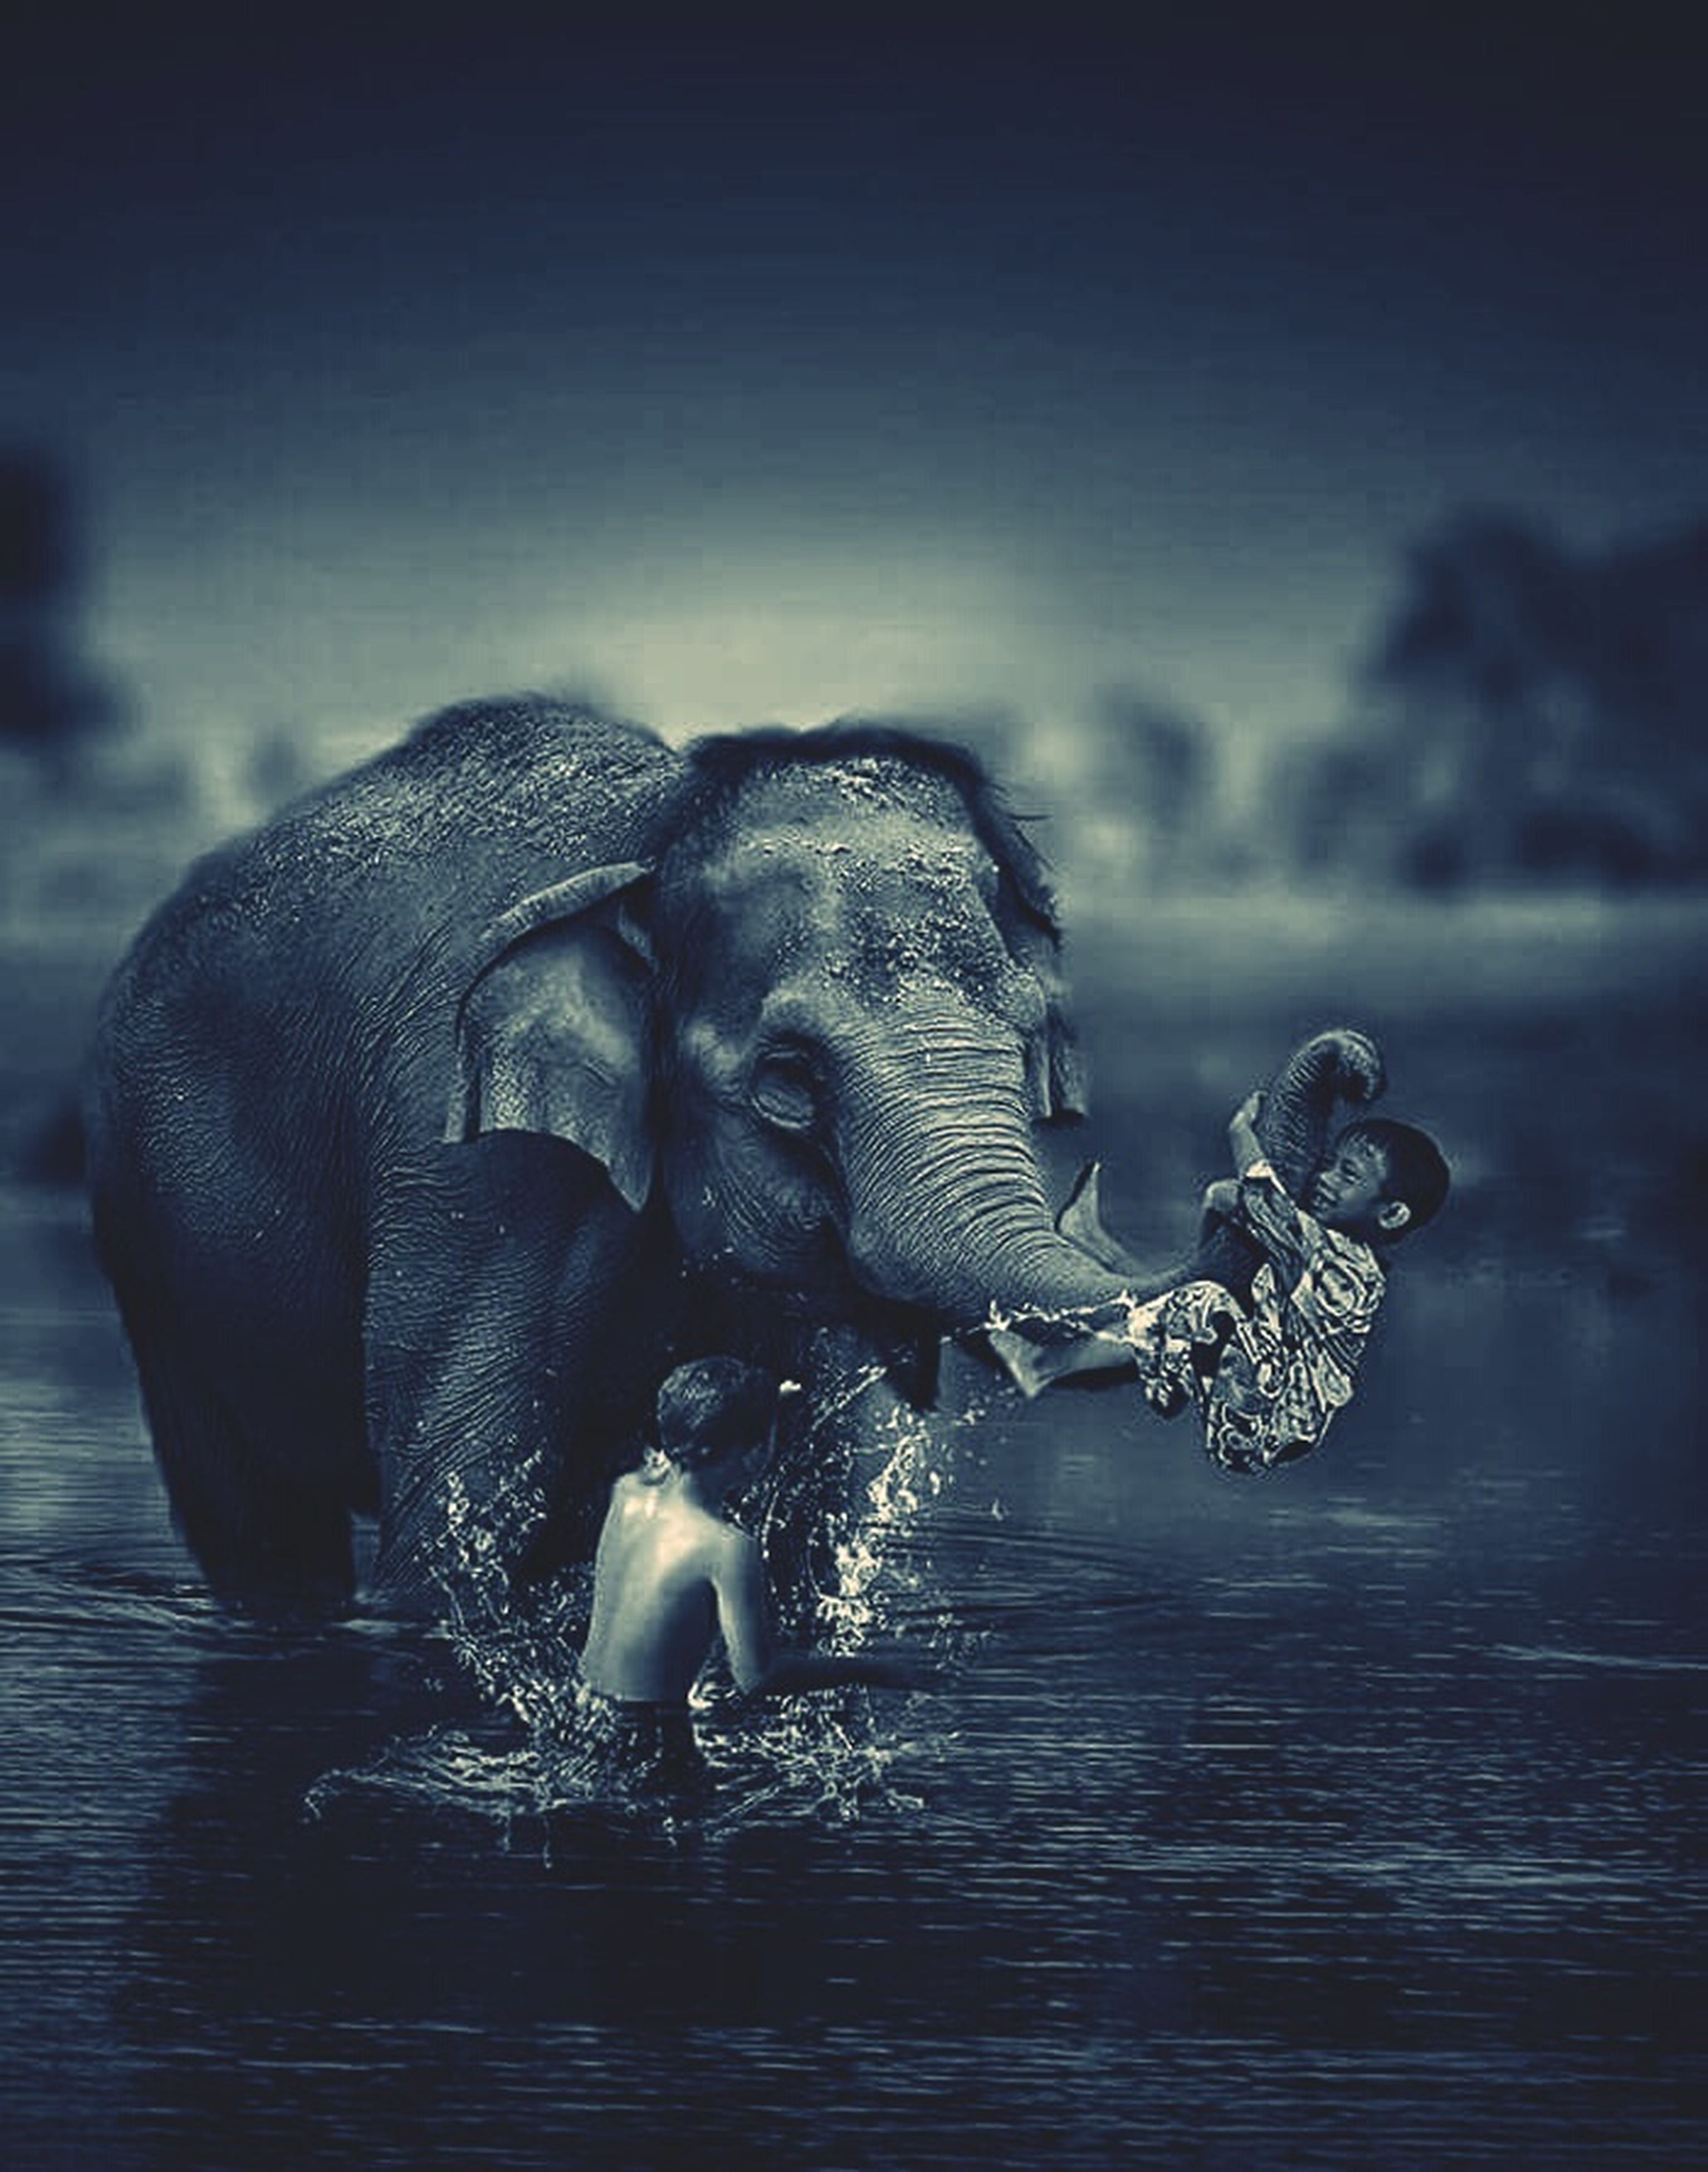 swimming pool, elephant, water, swimming, backgrounds, no people, nature, outdoors, day